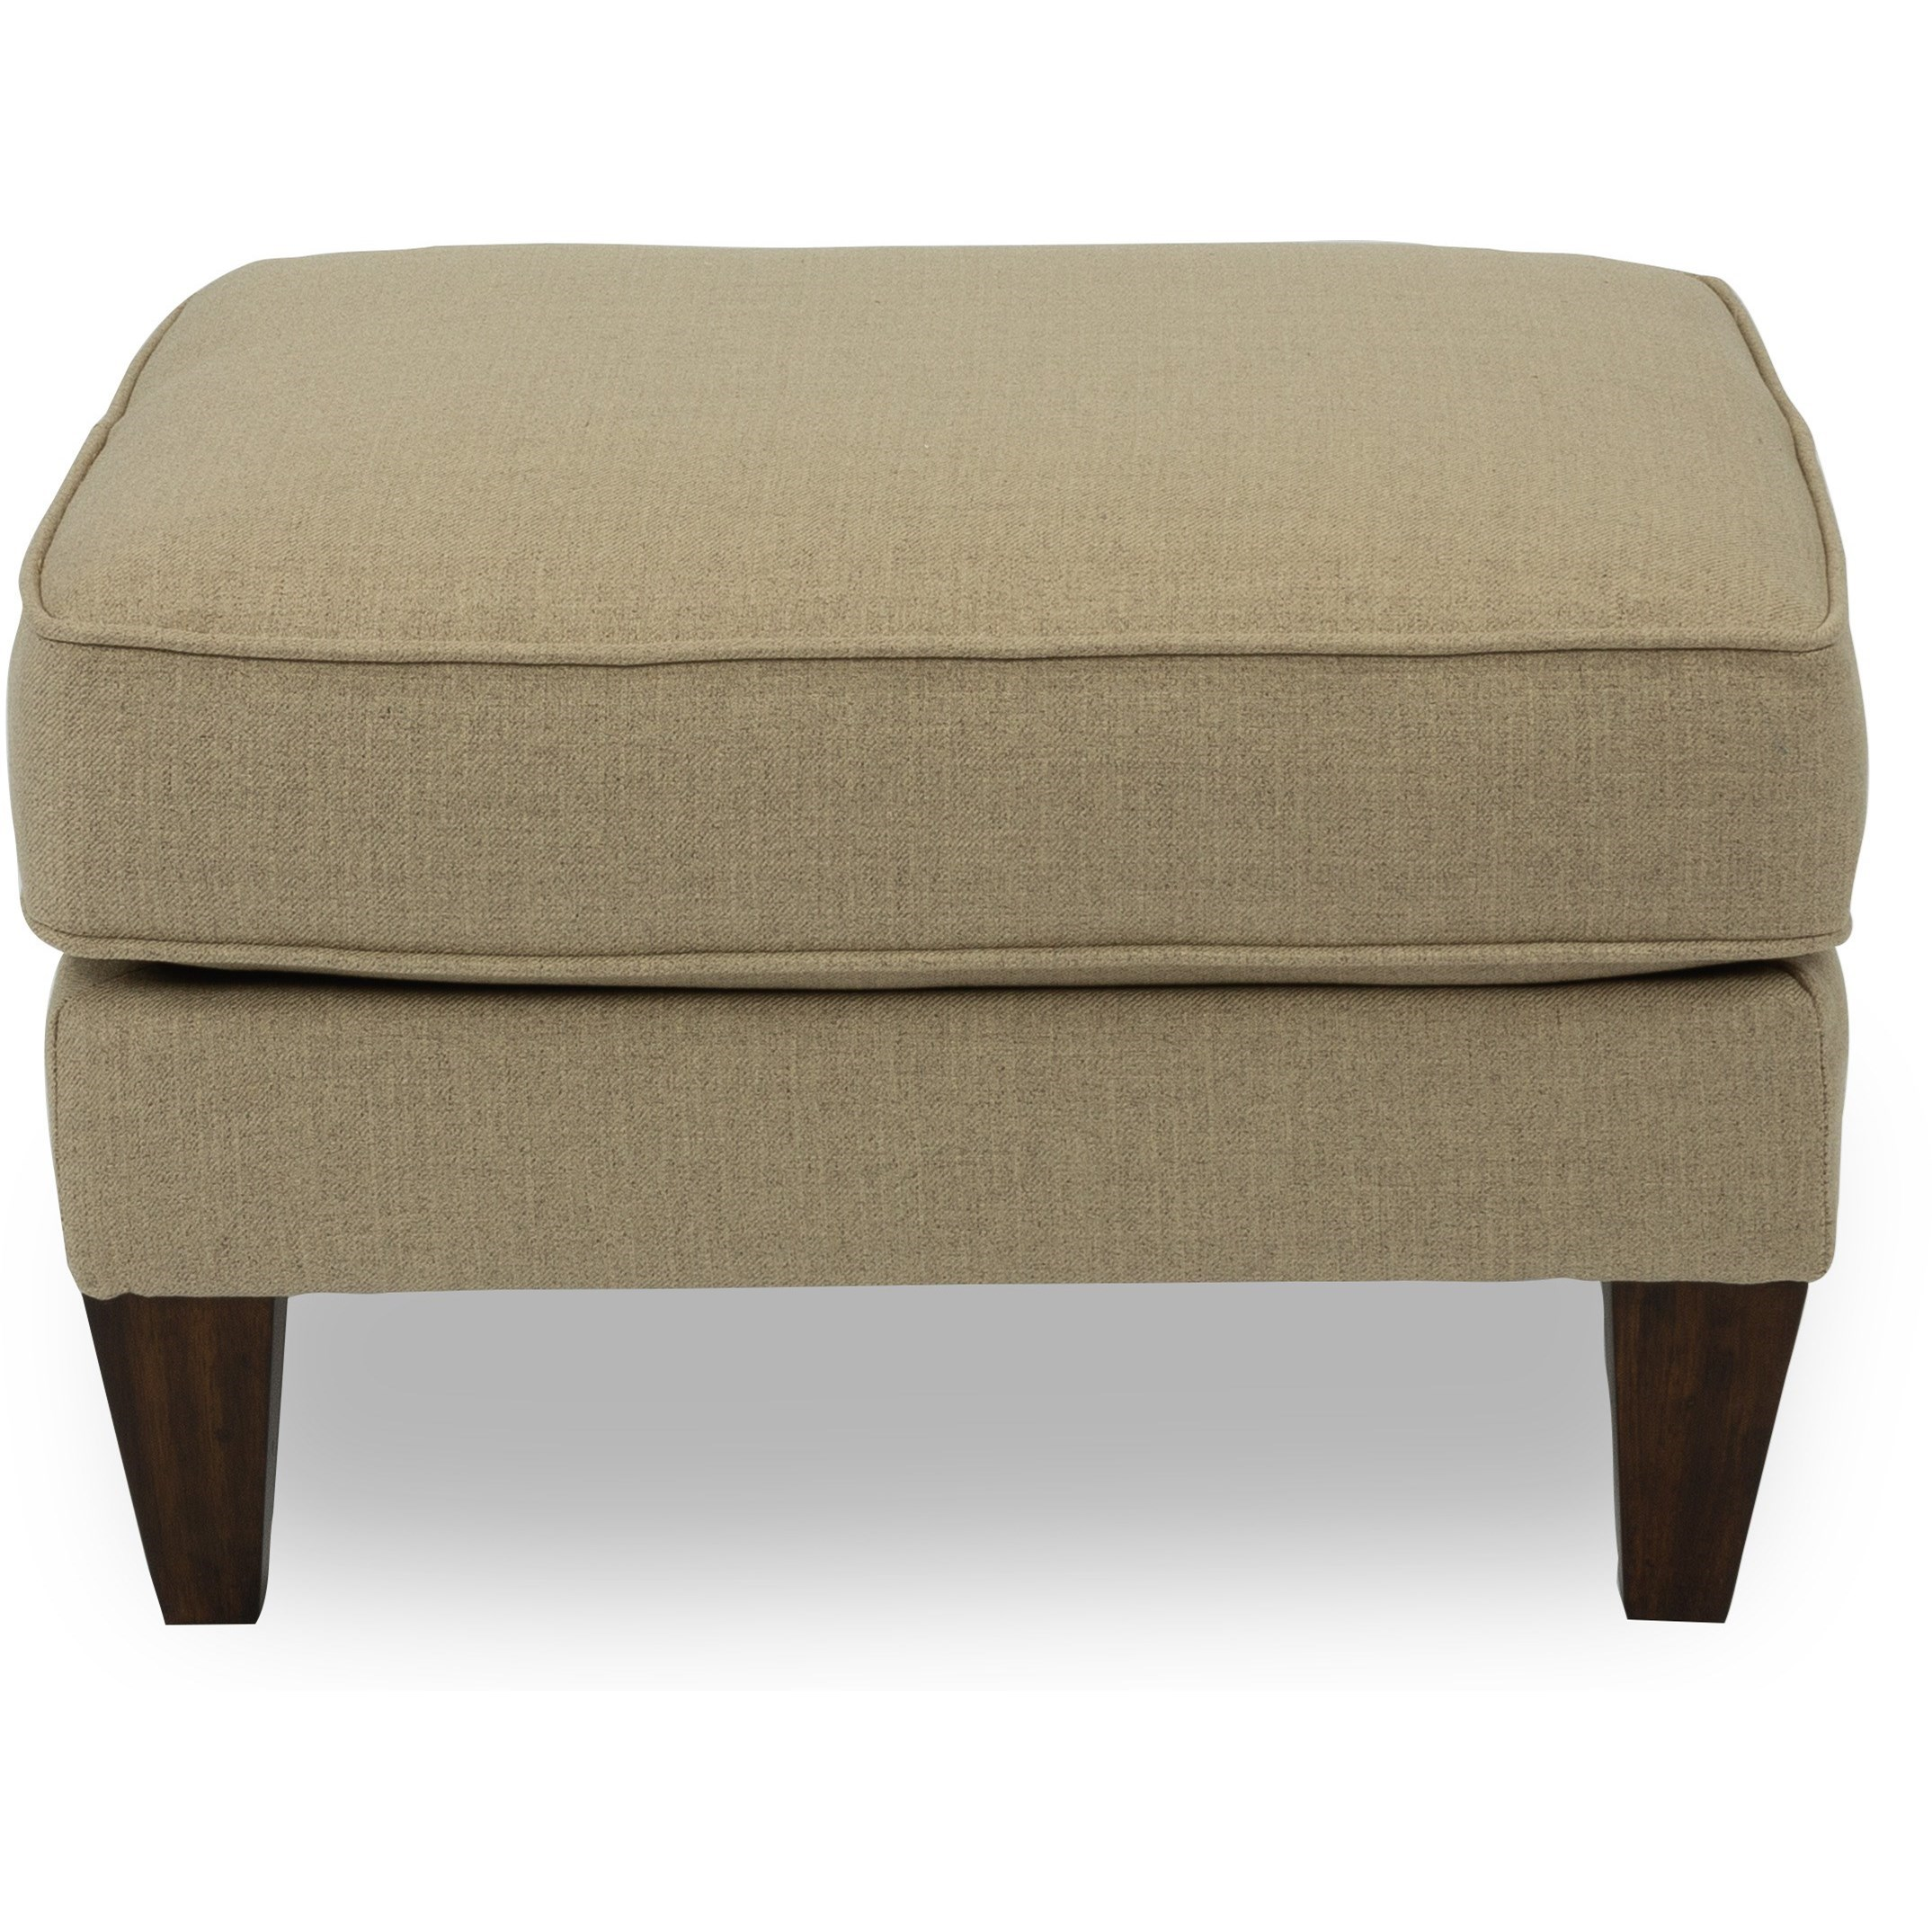 Digby Ottoman by Flexsteel at VanDrie Home Furnishings